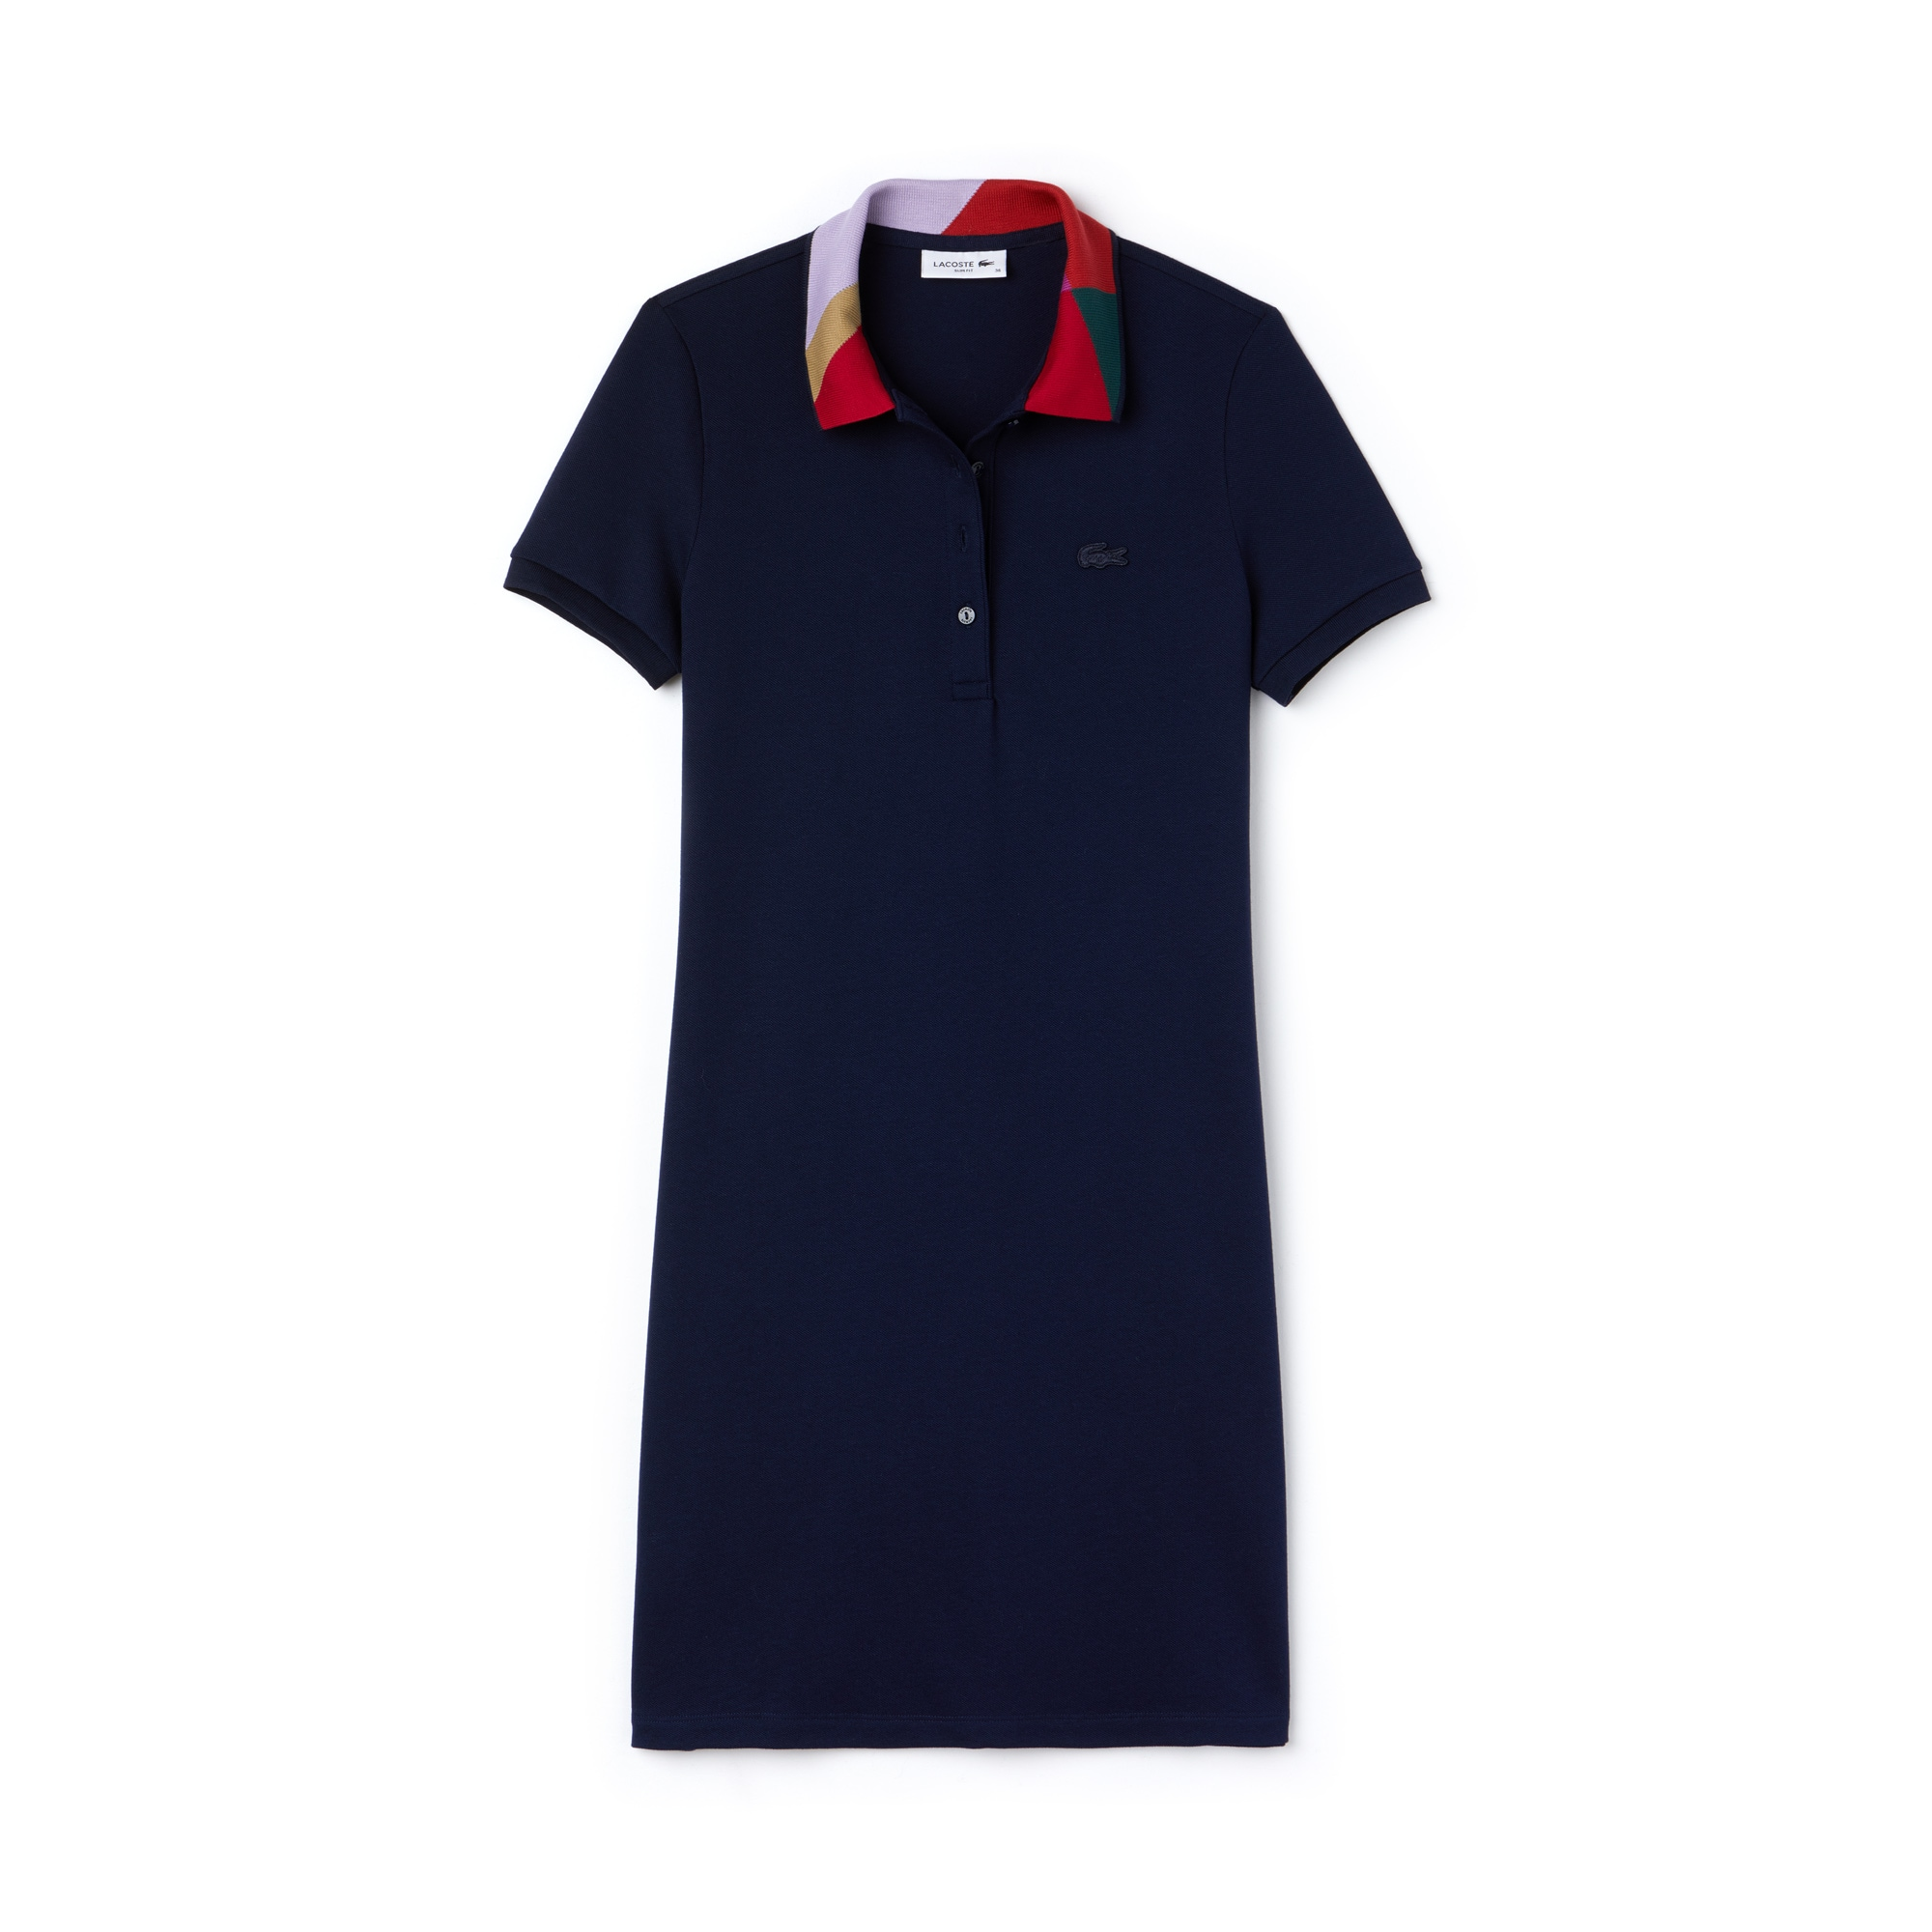 Abito a polo slim fit in mini piqué con collo jacquard color block